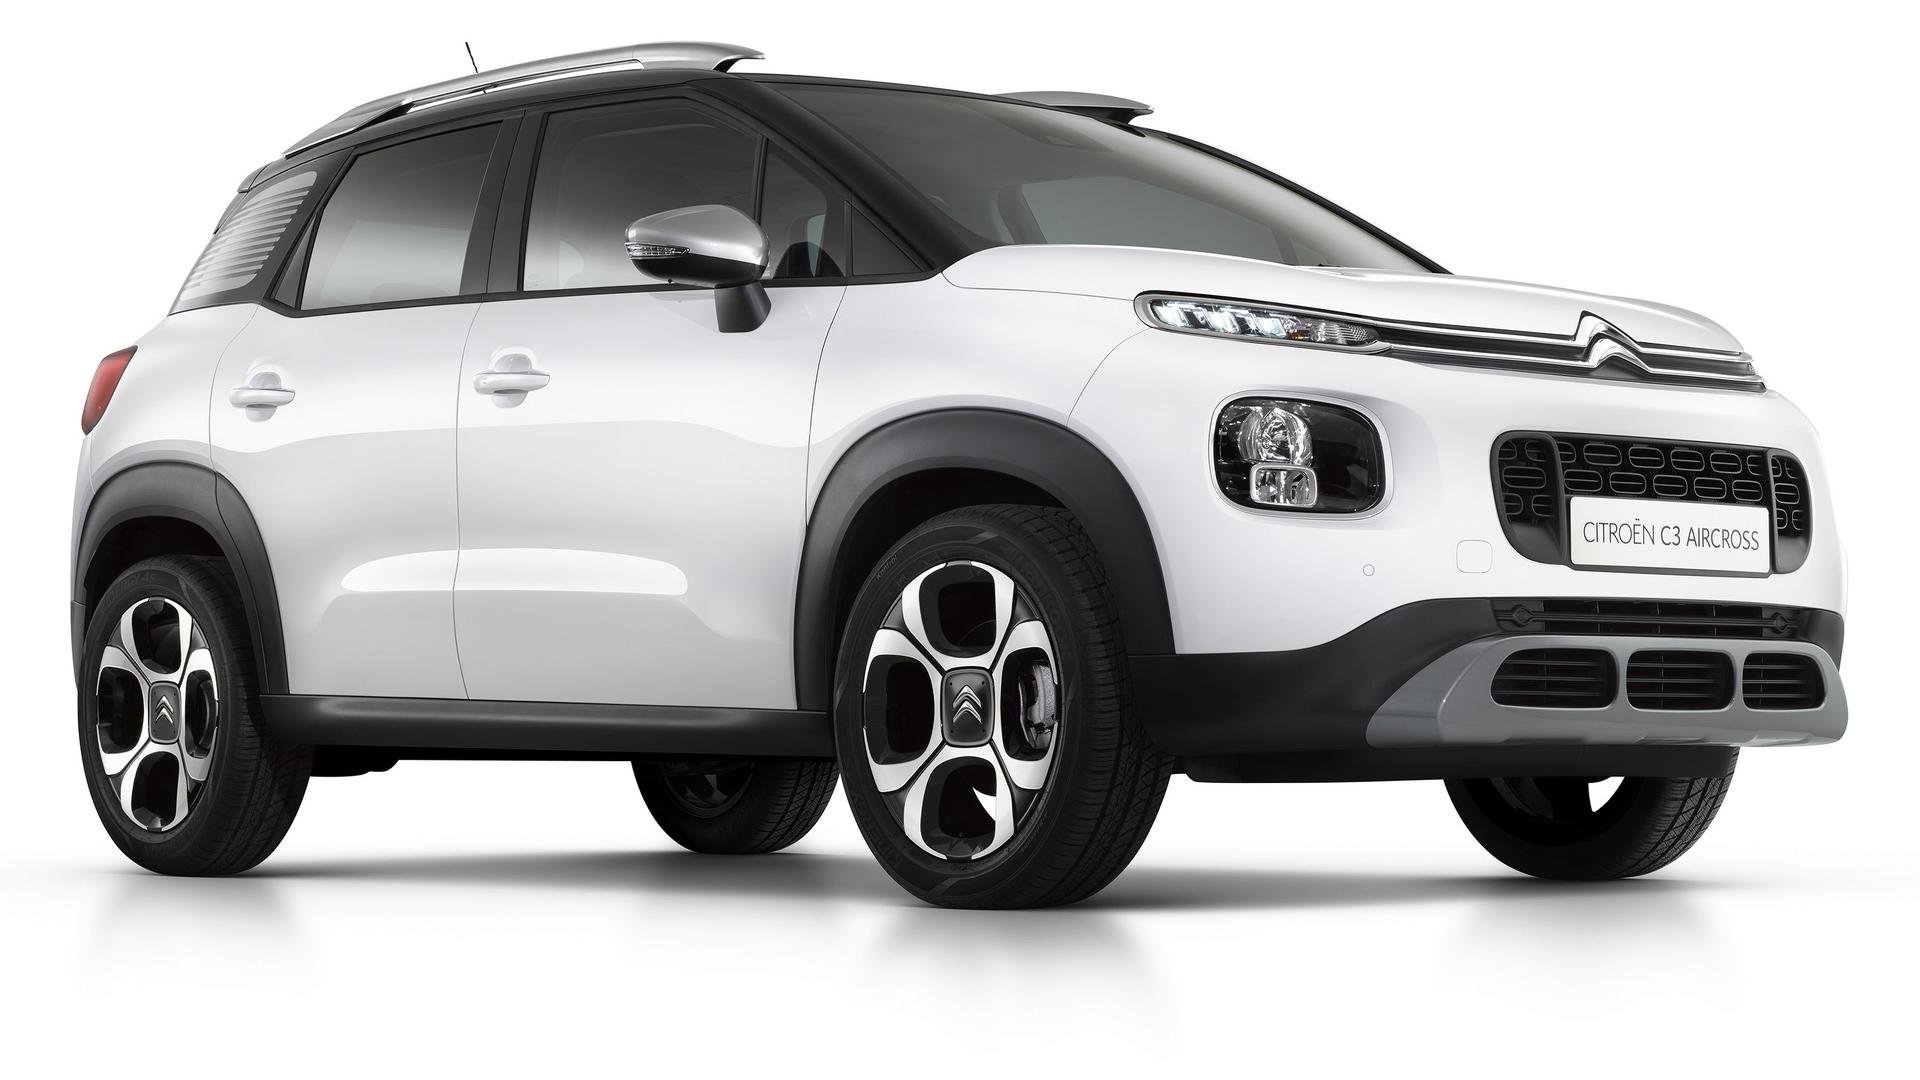 citroen c3 aircross 1 2 puretech eat6 shine ncelemesi. Black Bedroom Furniture Sets. Home Design Ideas